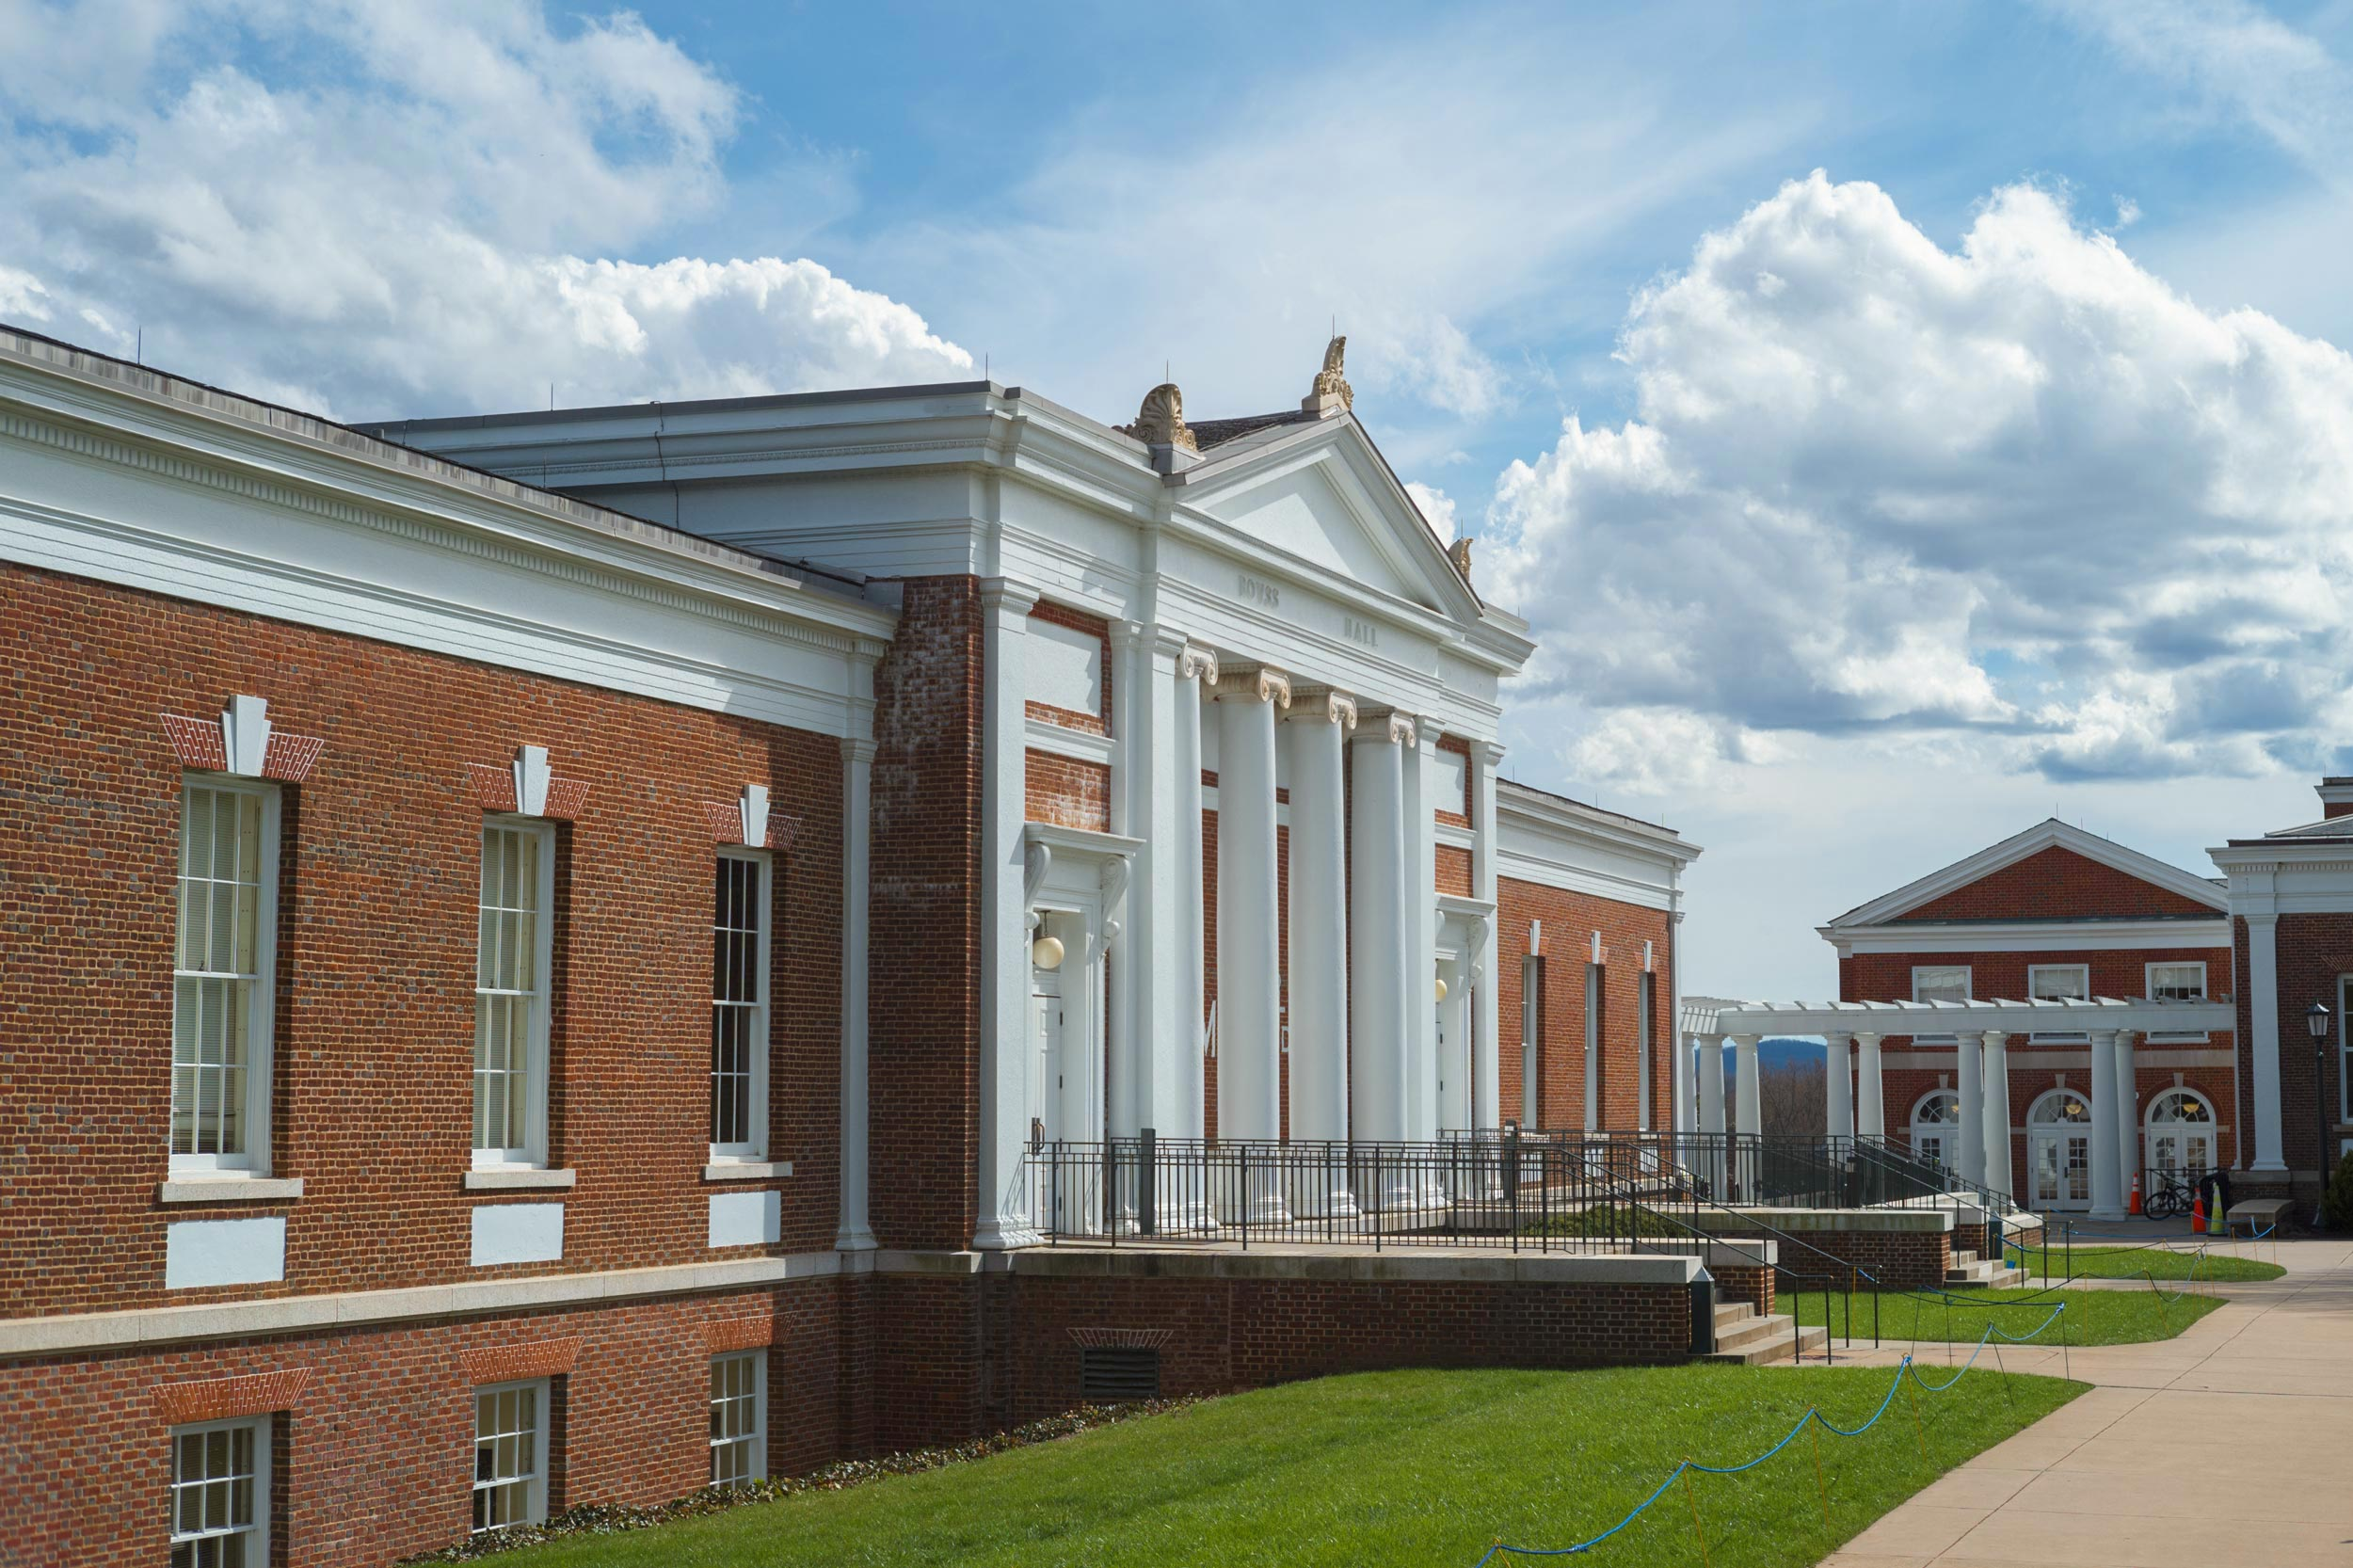 The McIntire School of Commerce's business education programs consistently rank among the nation's best.